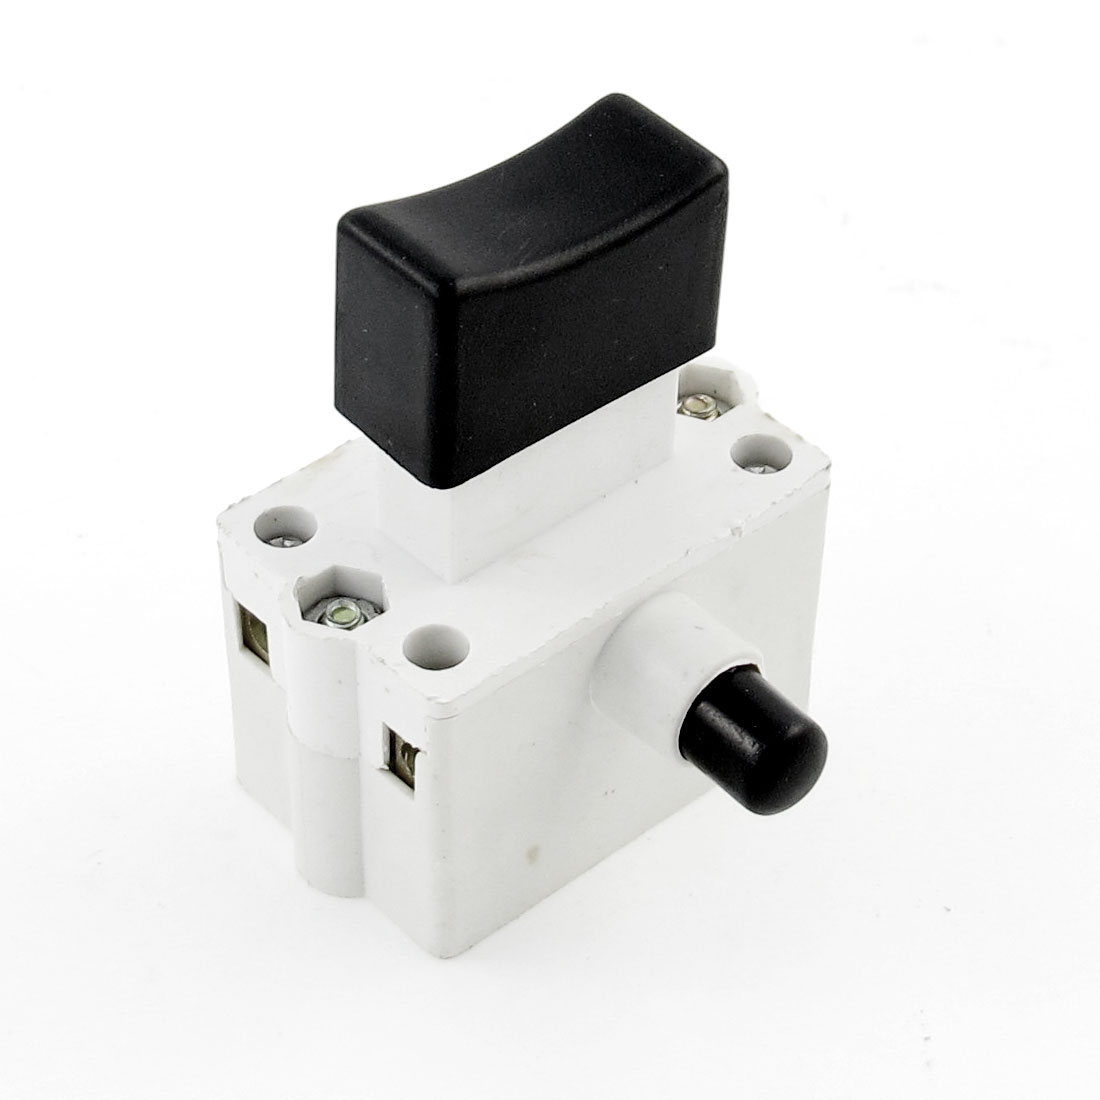 DPST 2NO AC250V/10A 5E4 Trigger Switch for Electric Power Drill Tool